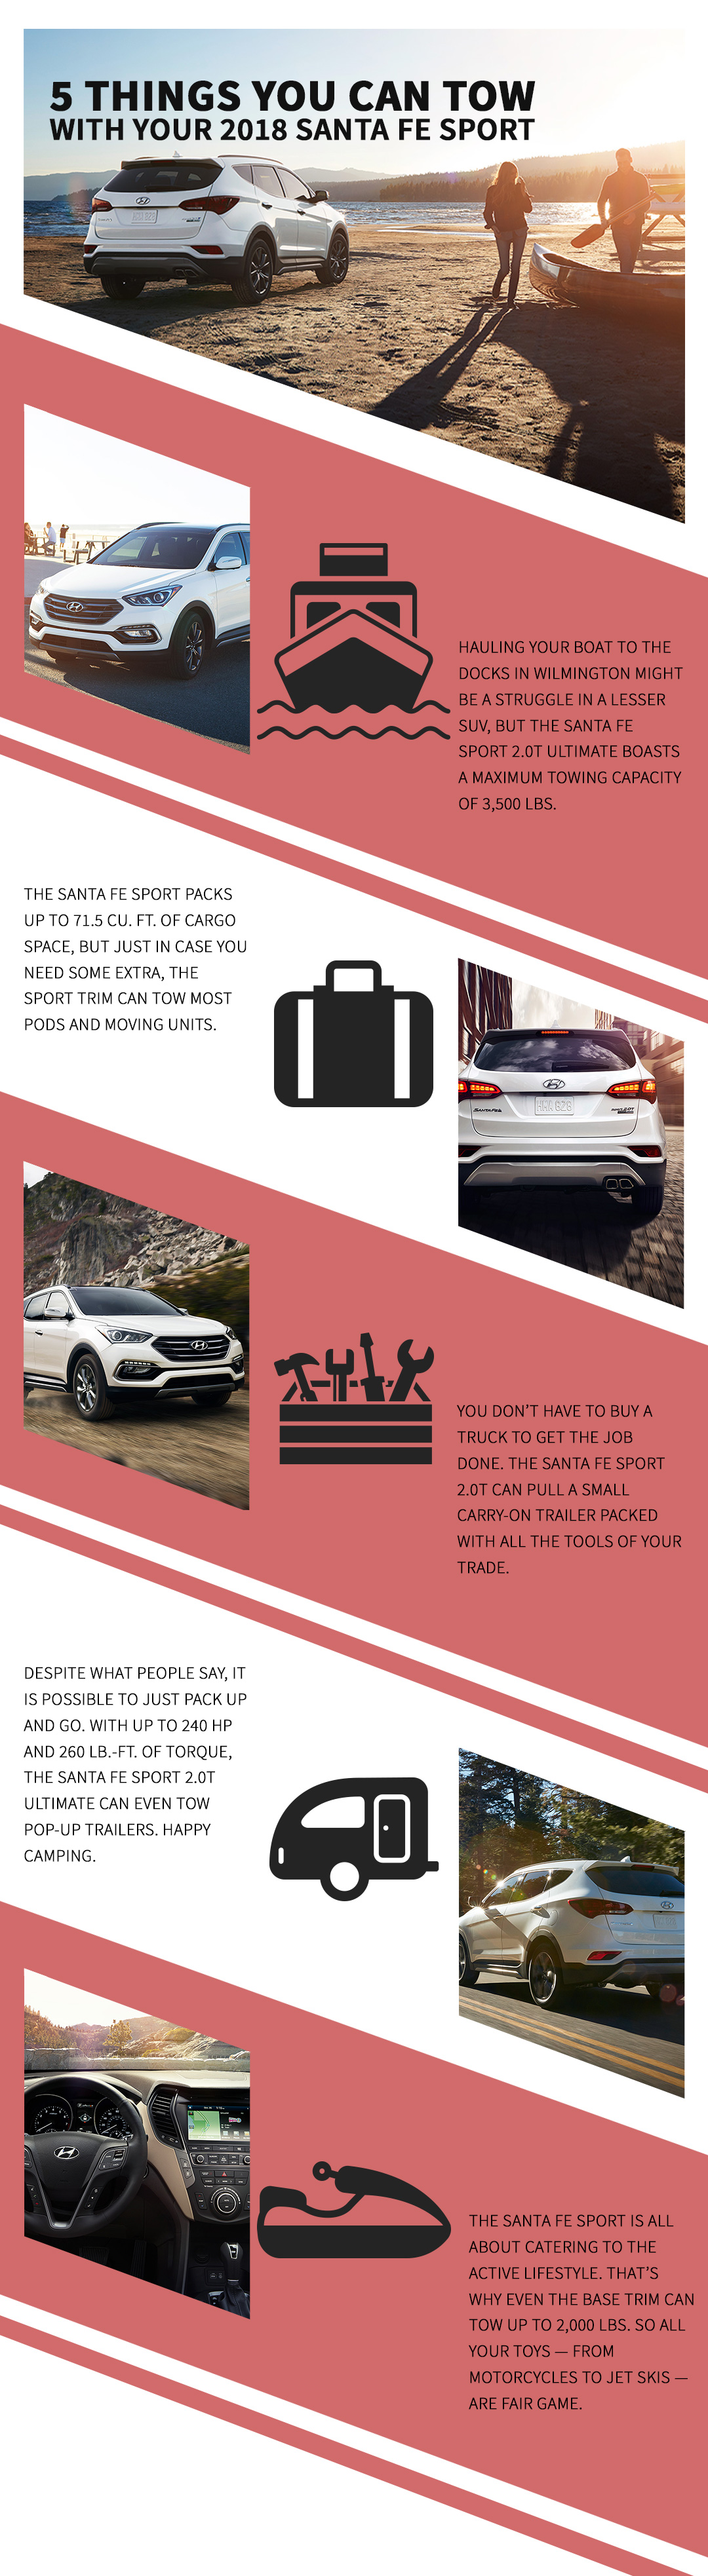 A custom infographic showing five items the 2018 Hyundai Santa Fe Sport can tow